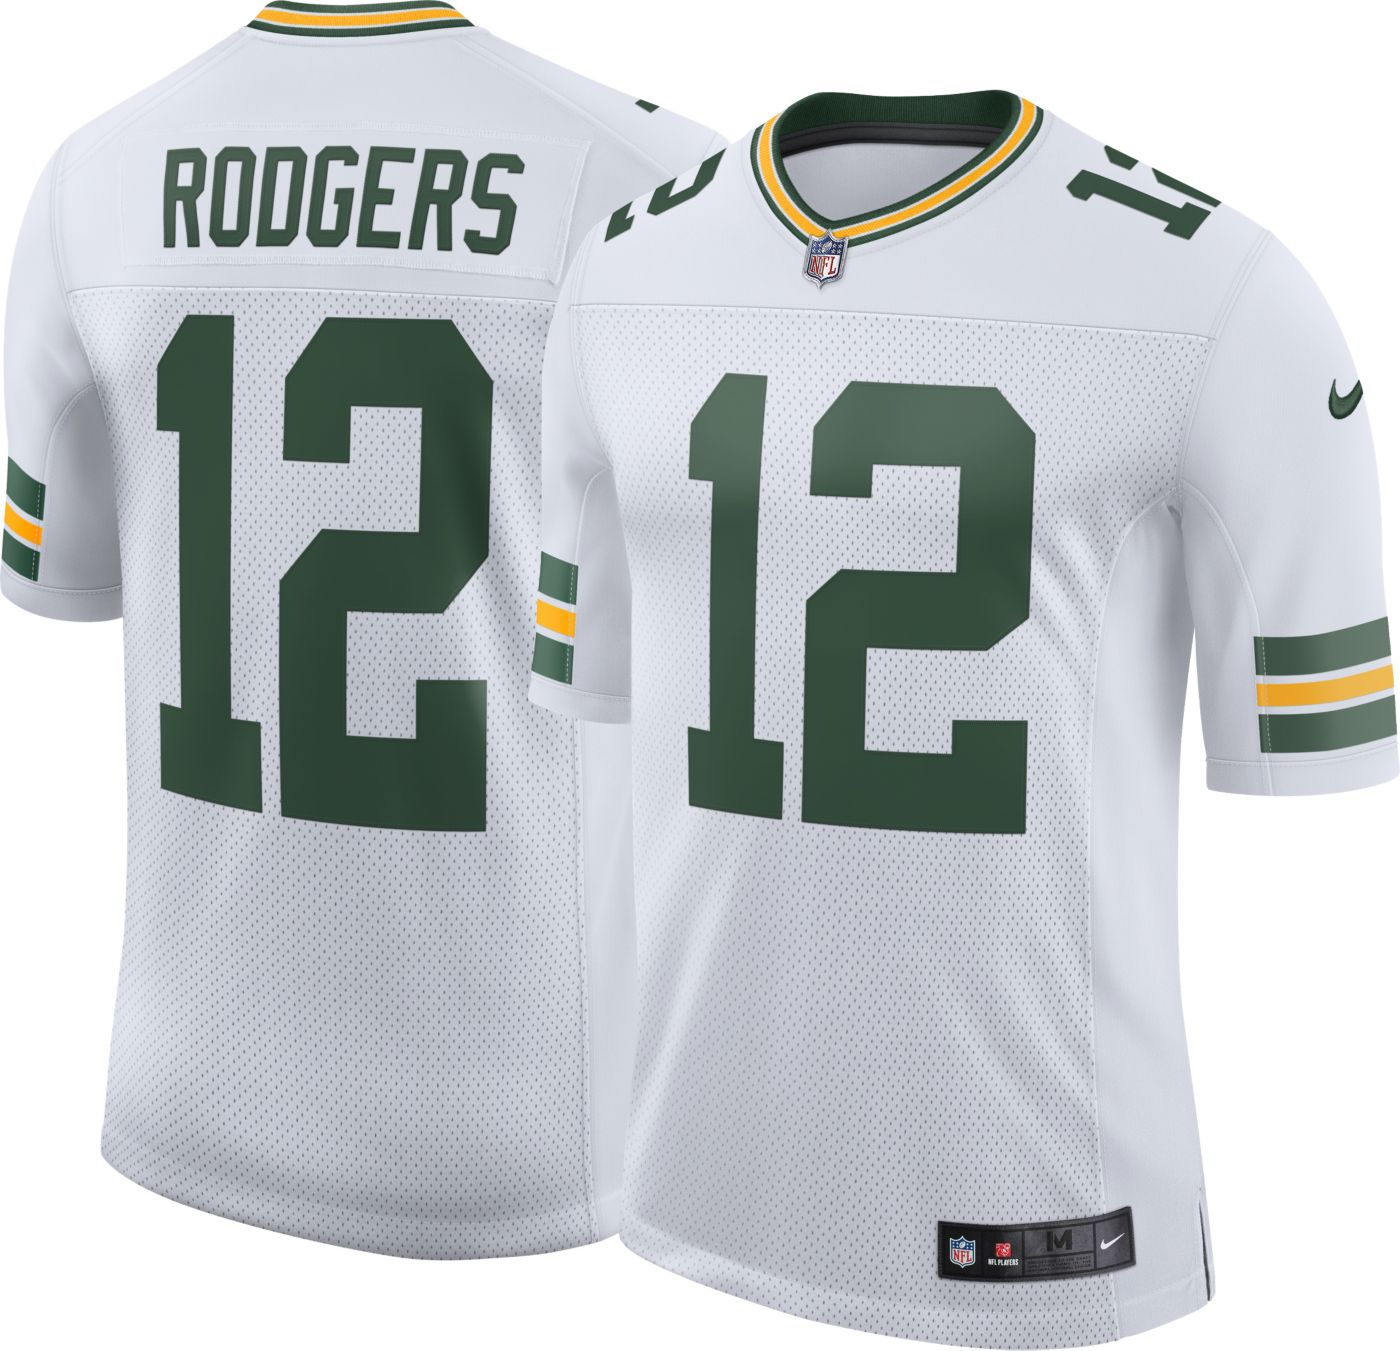 Nike Men's Away Limited Jersey Green Bay Packers Aaron Rodgers #12